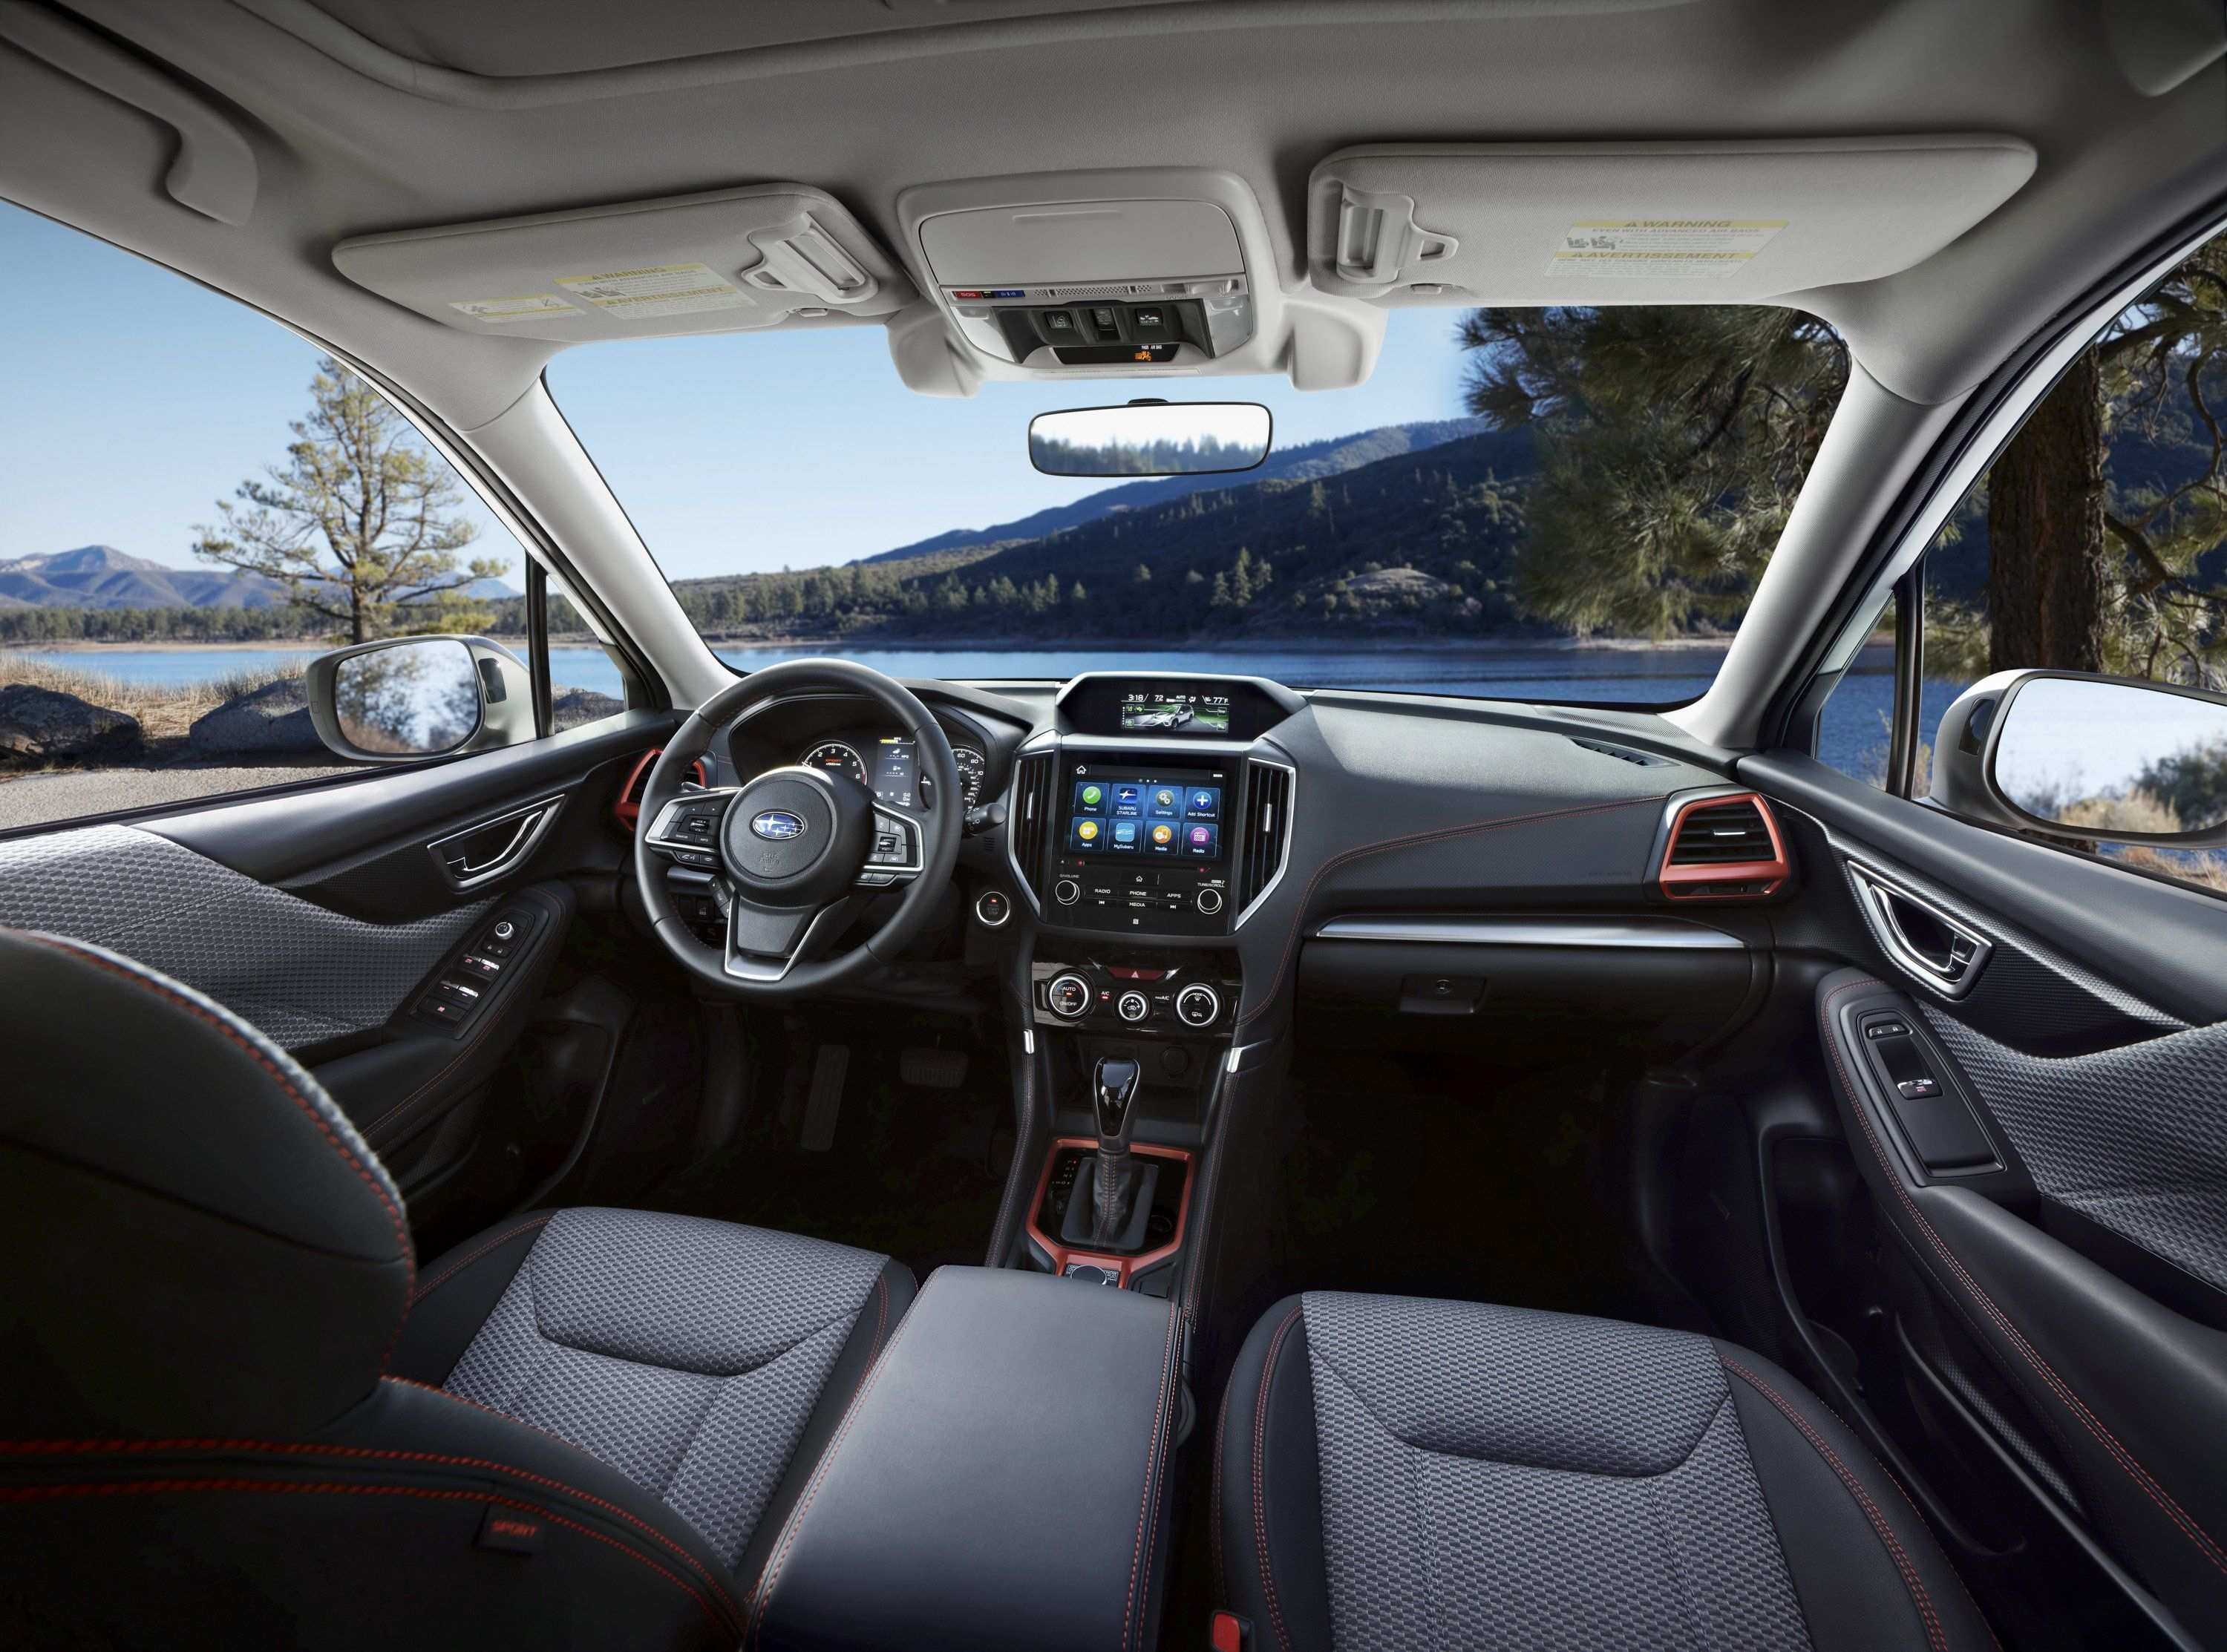 52 A 2019 Subaru Forester Manual Picture